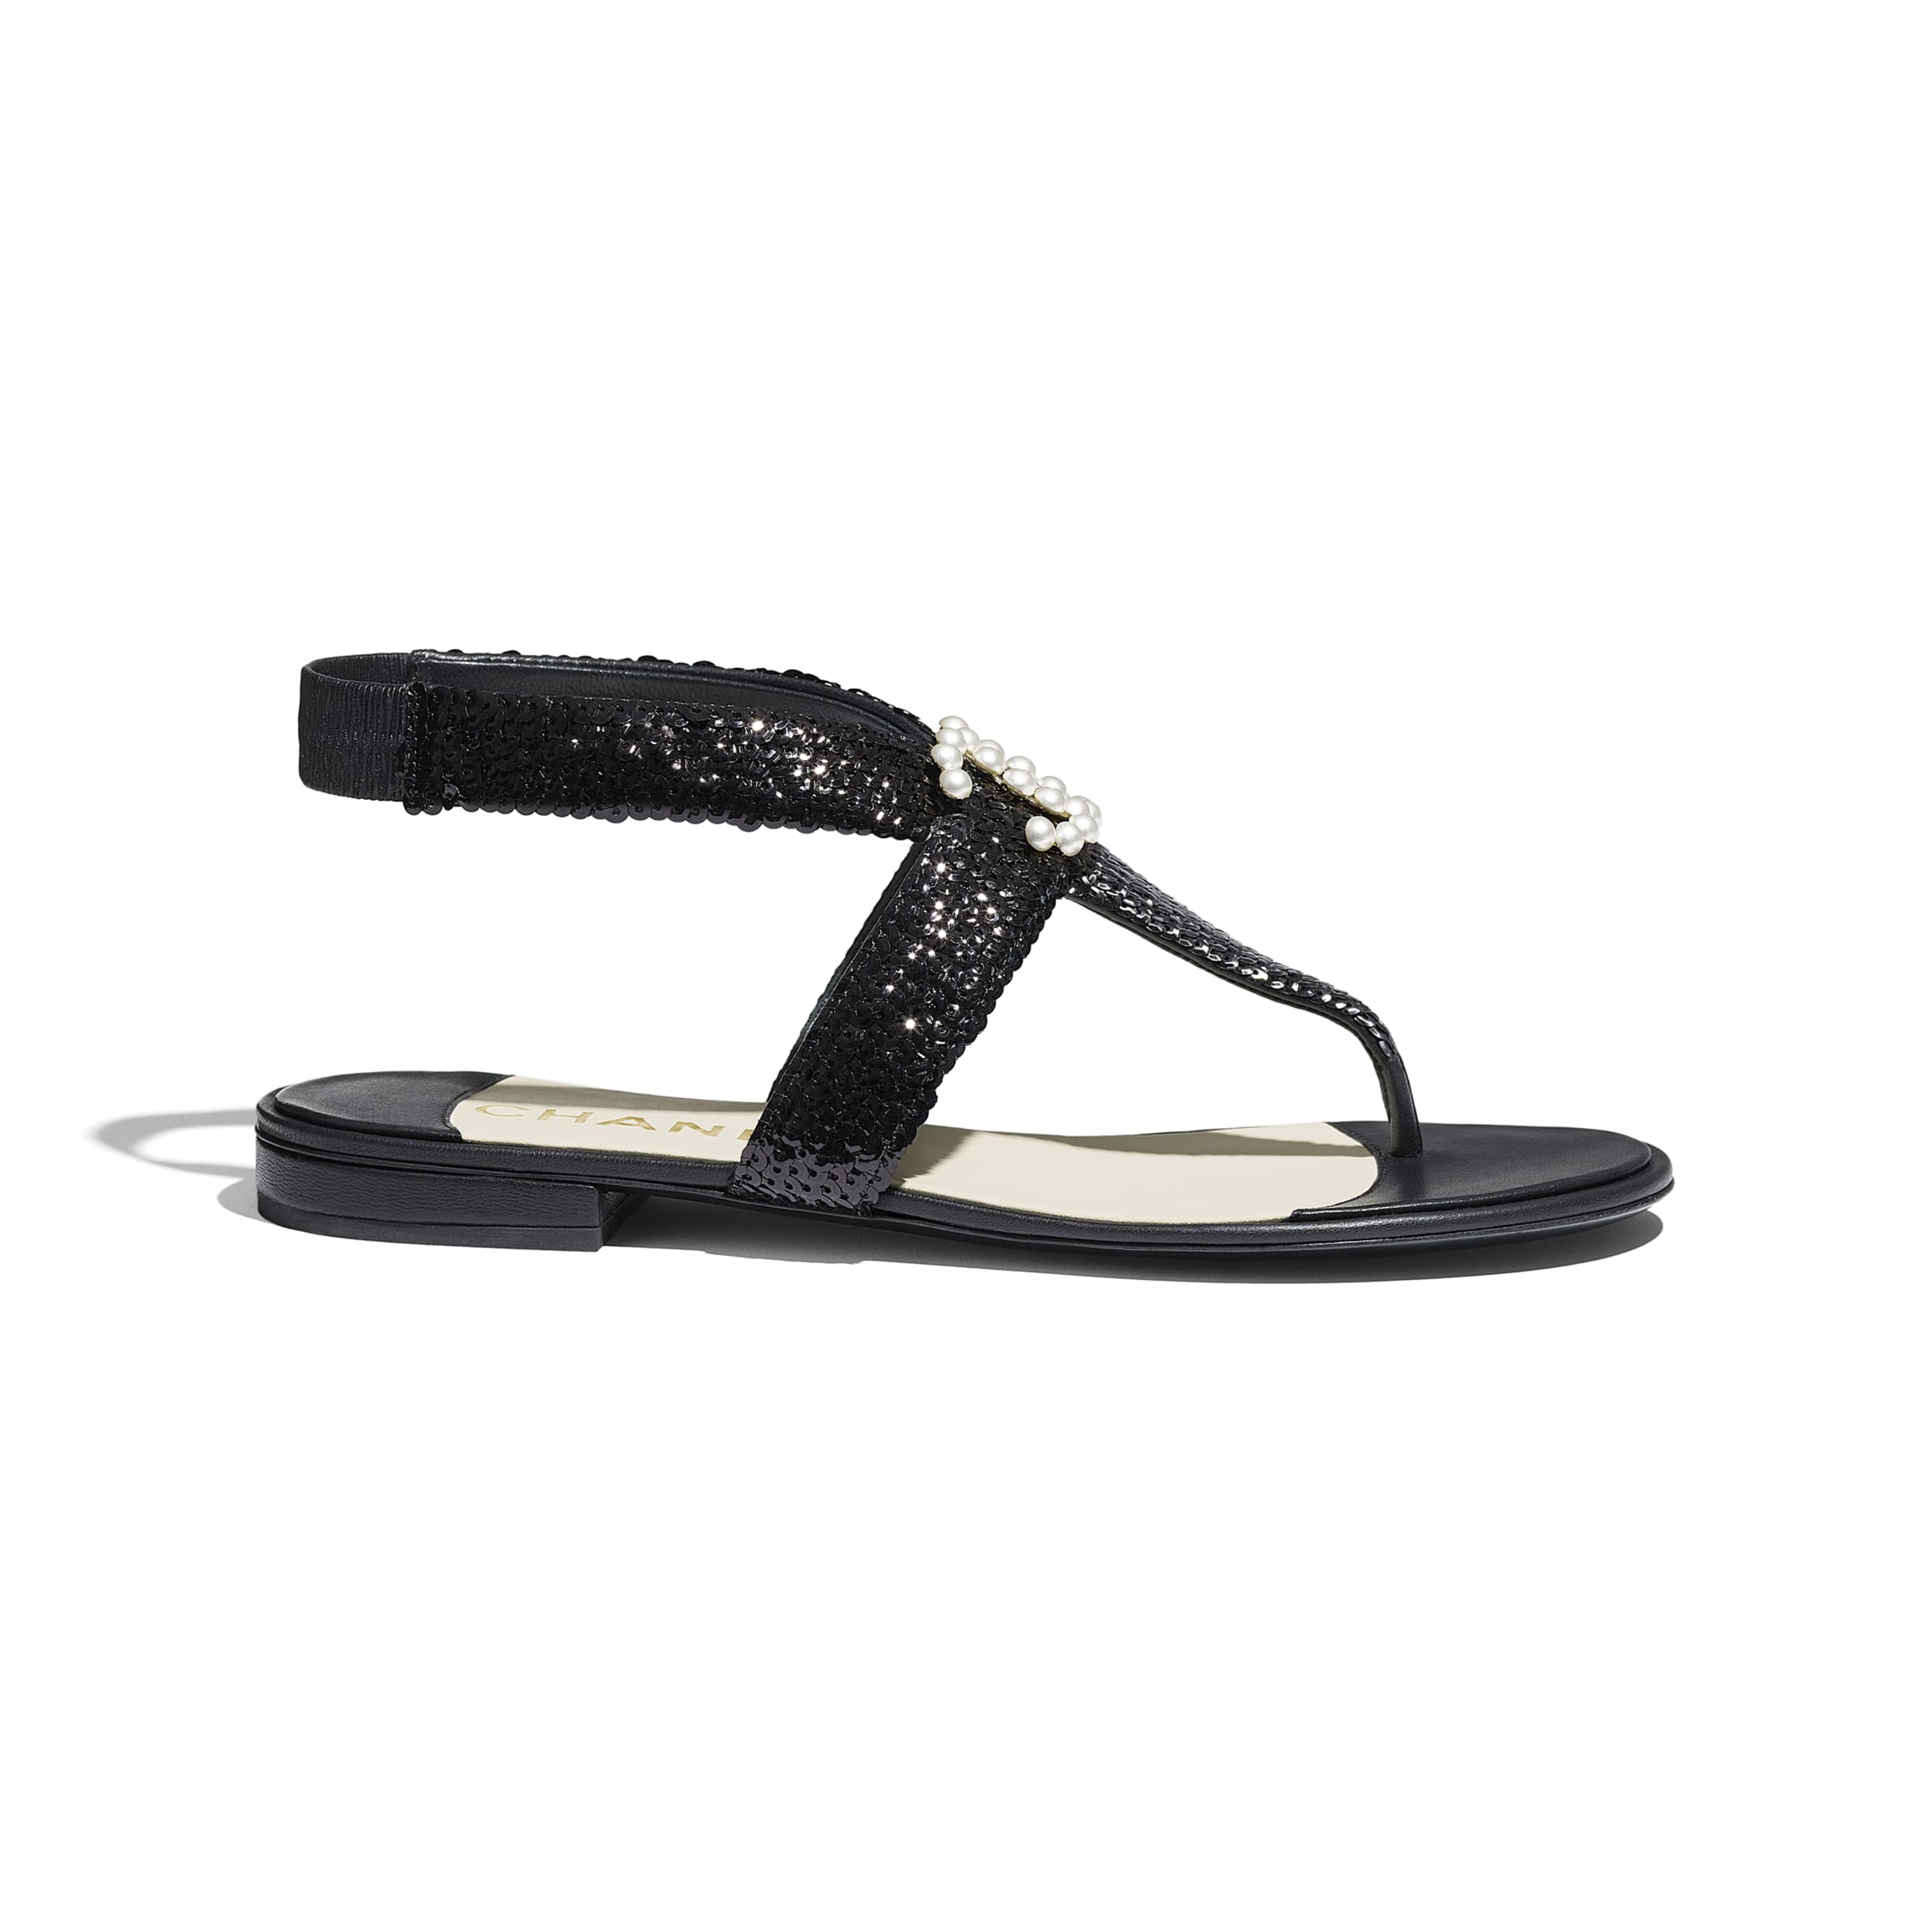 Sandals - Black - Lambskin & Sequins - CHANEL - Default view - see standard sized version